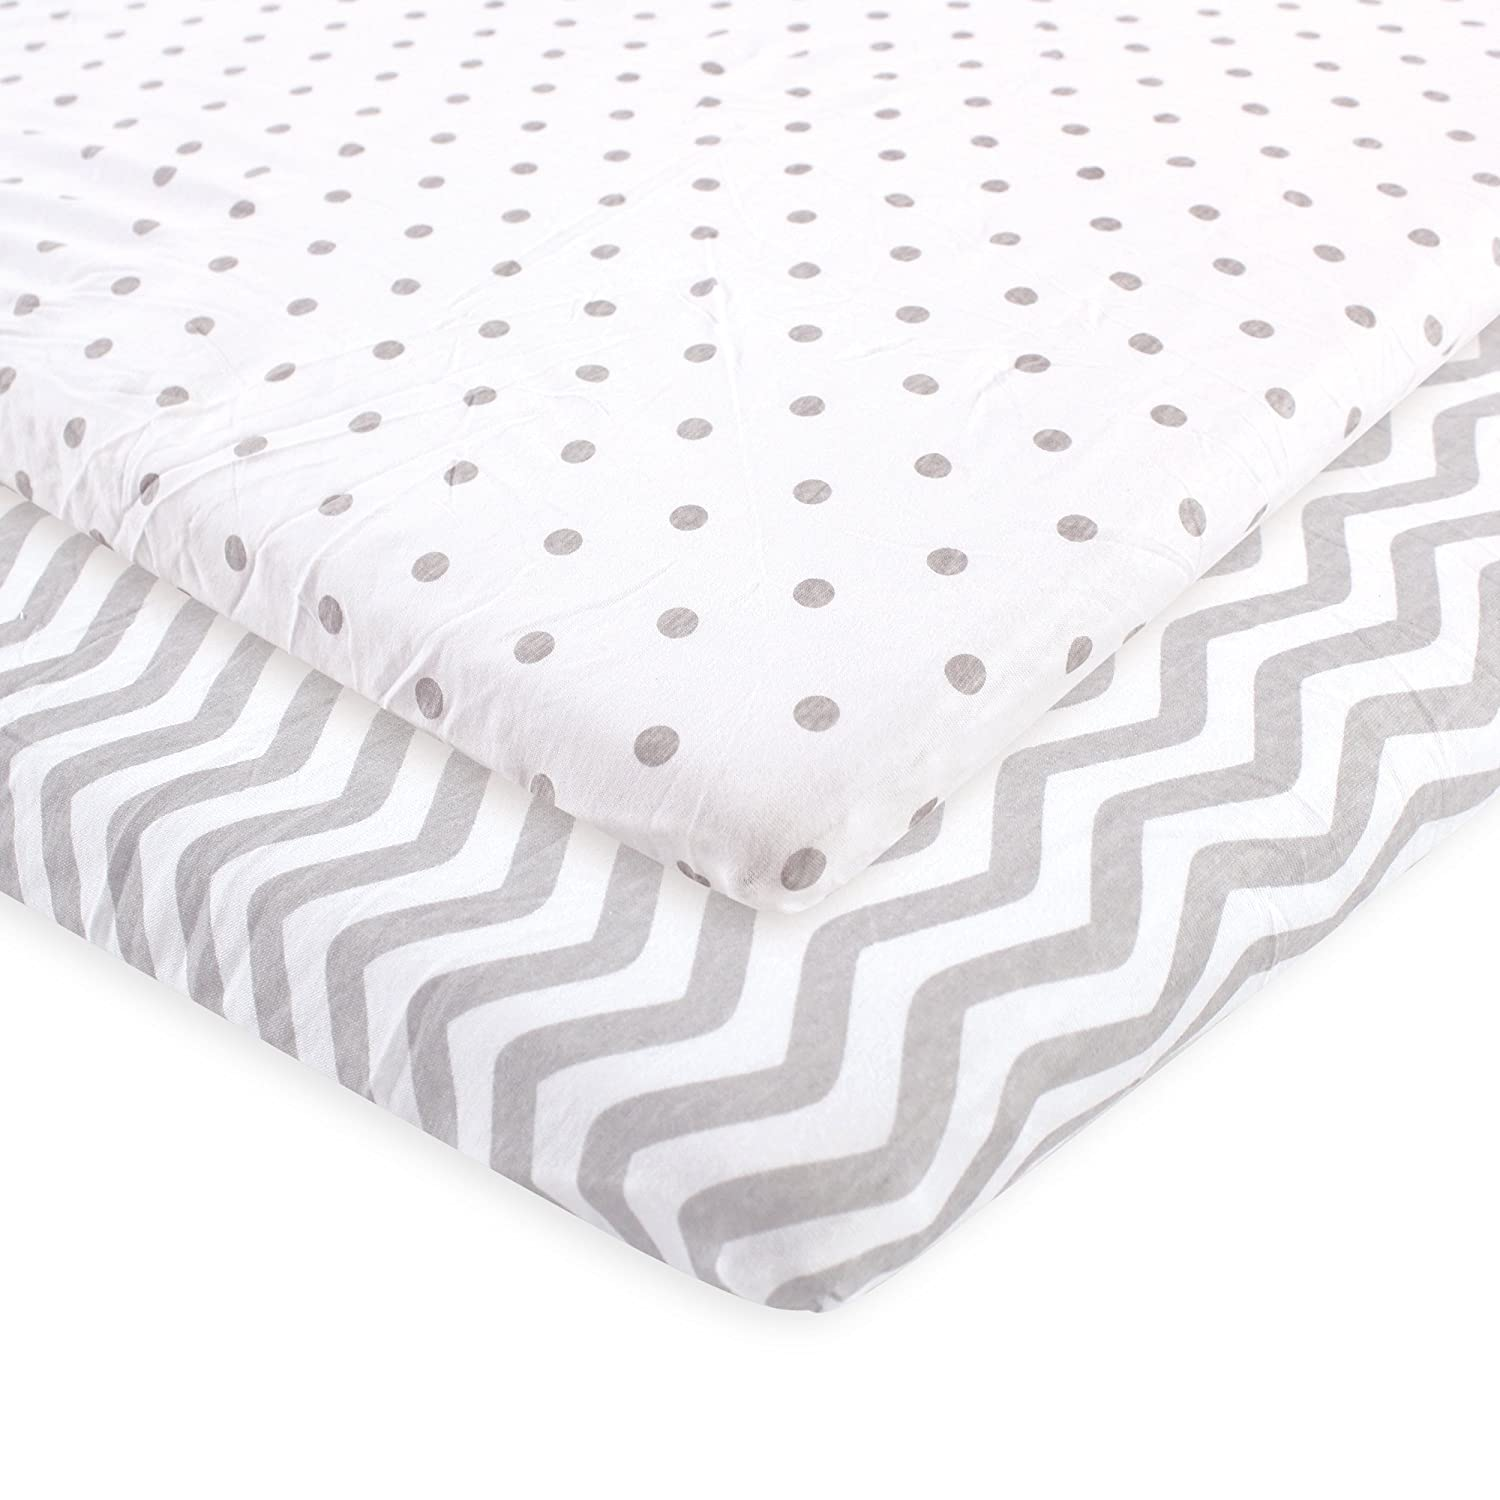 Luvable Friends Fitted Playard Sheet, 2 Pack, Pink Chevron and Dots, One Size BabyVision Inc. Children' s Apparel 04178